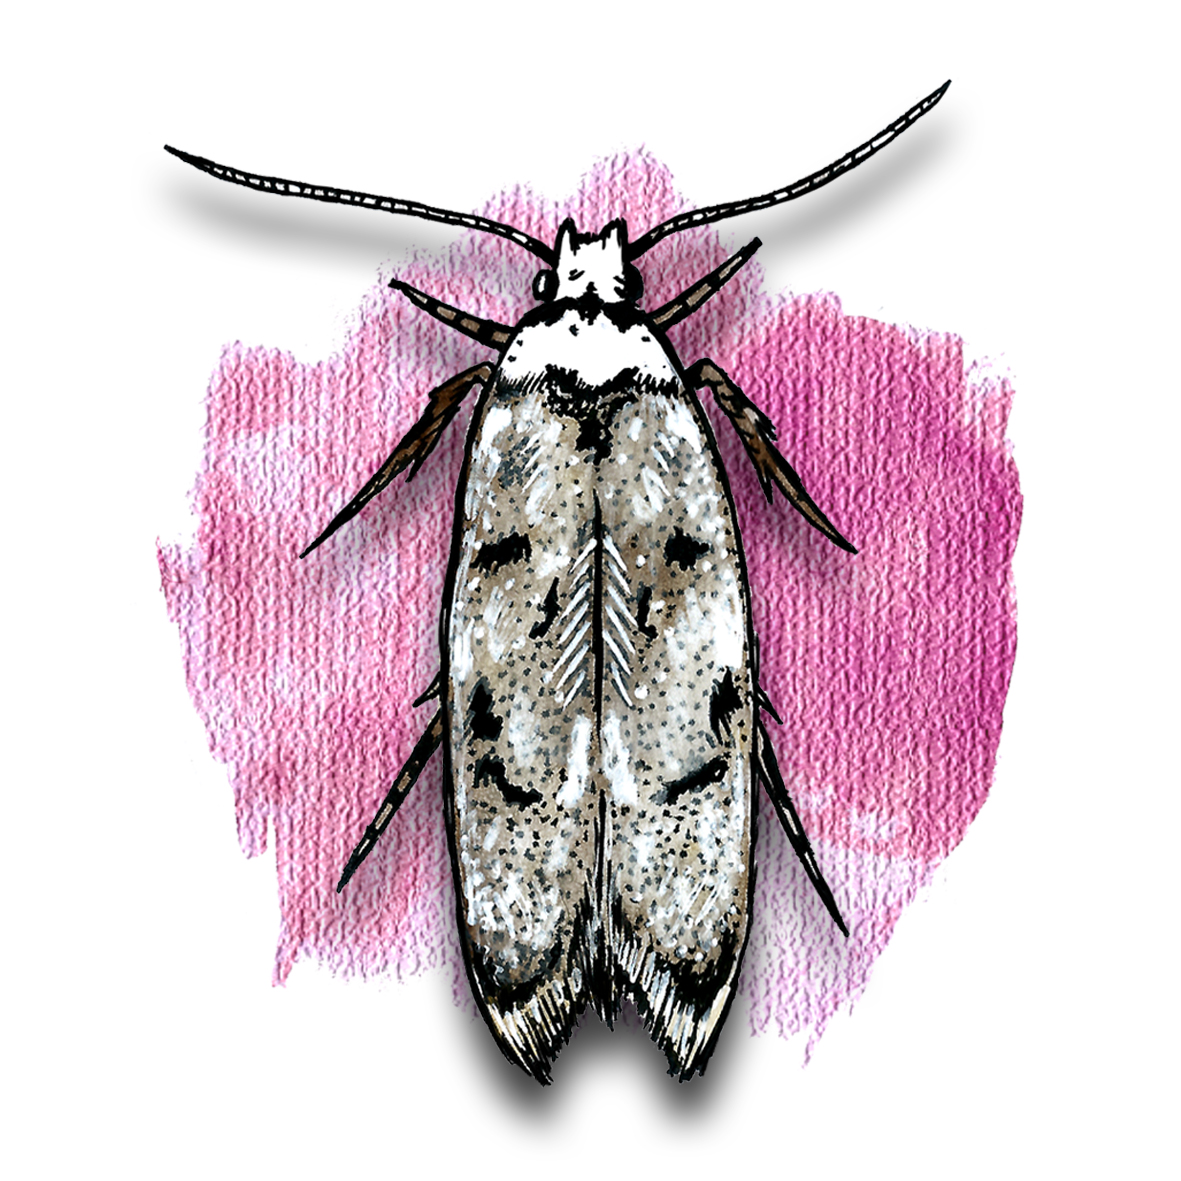 20. White Shouldered House Moth